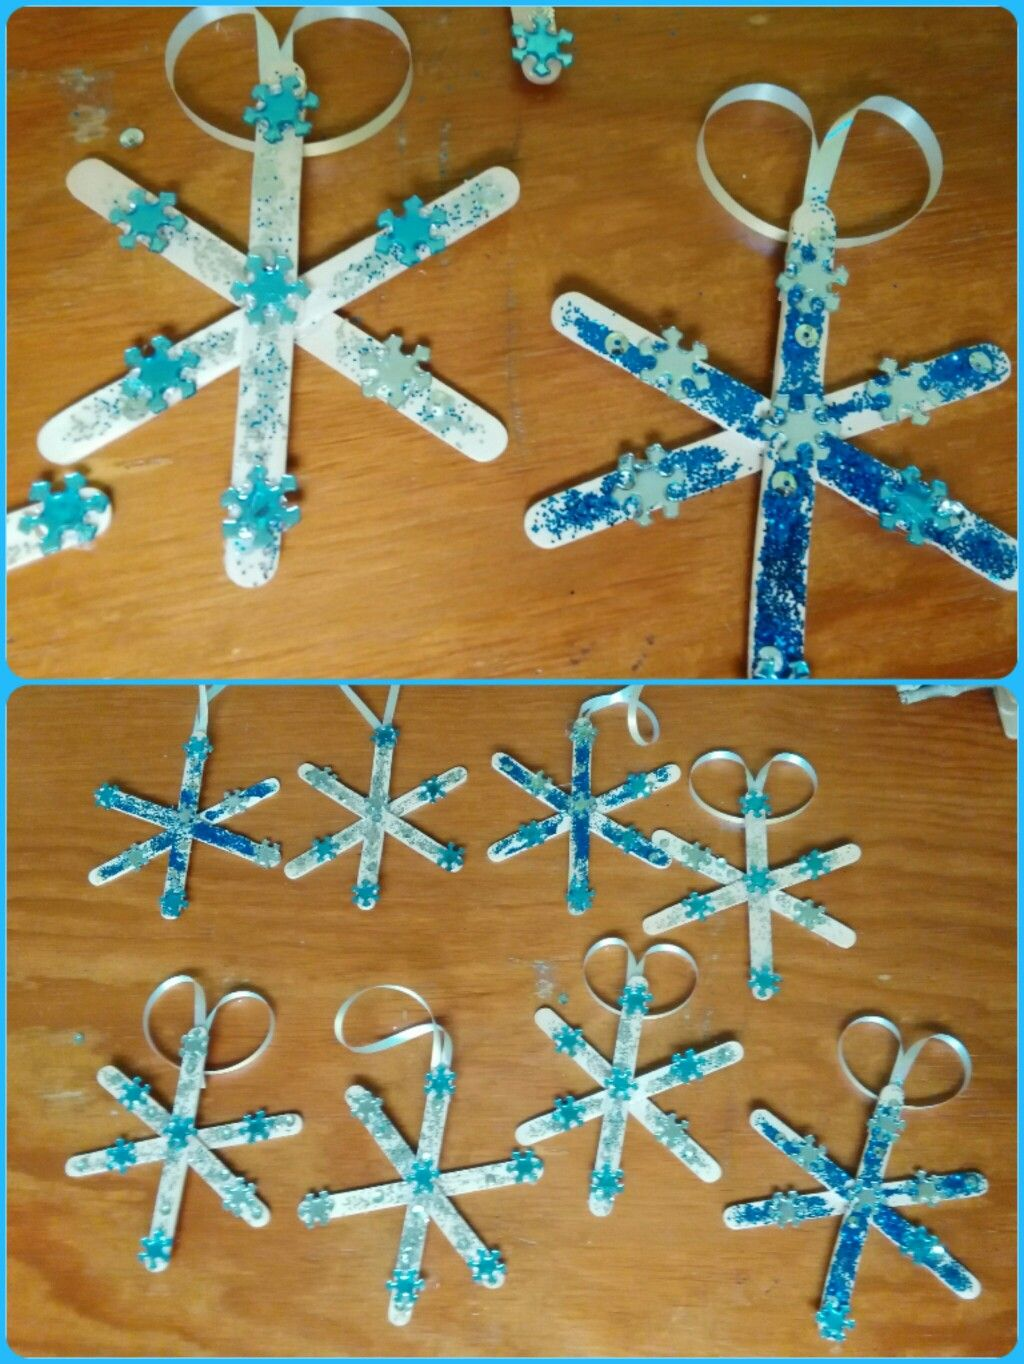 Snowflake ornaments crafts - Snowflake Ornaments Crafts Toddler Snowflake Ornaments Craft